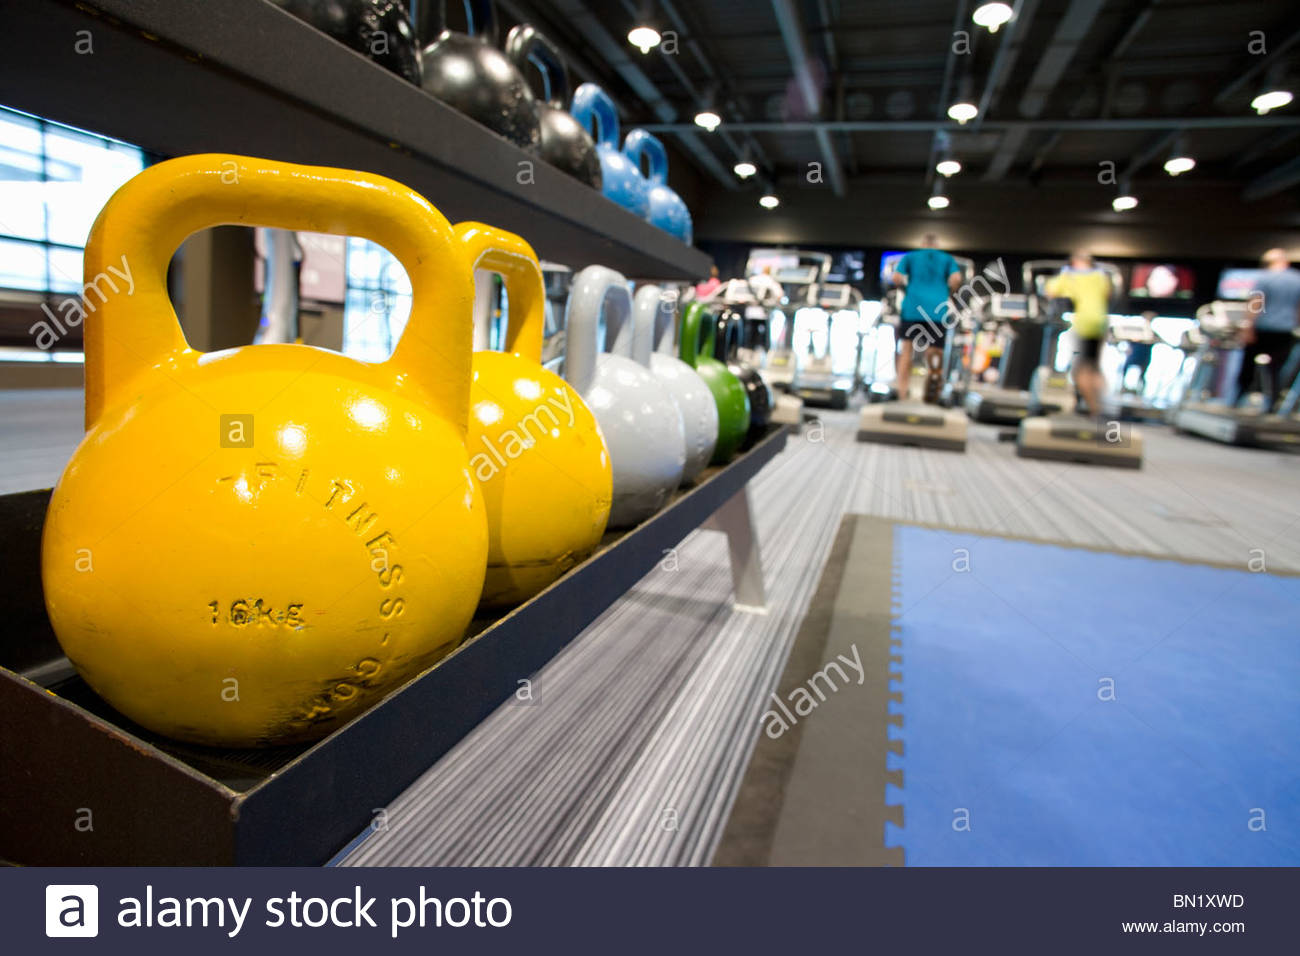 Colorful medicine balls on rack in health club and people exercising in background - Stock Image